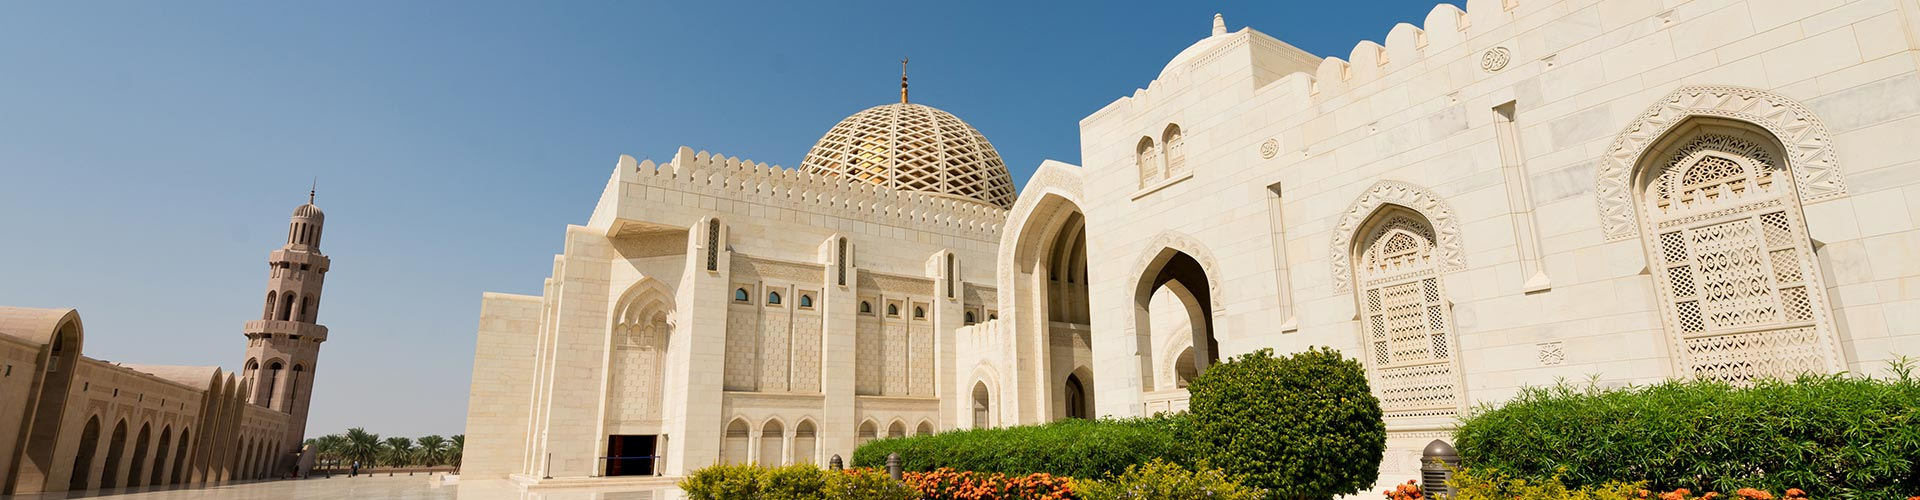 muscat-city-tour-and-shopping image